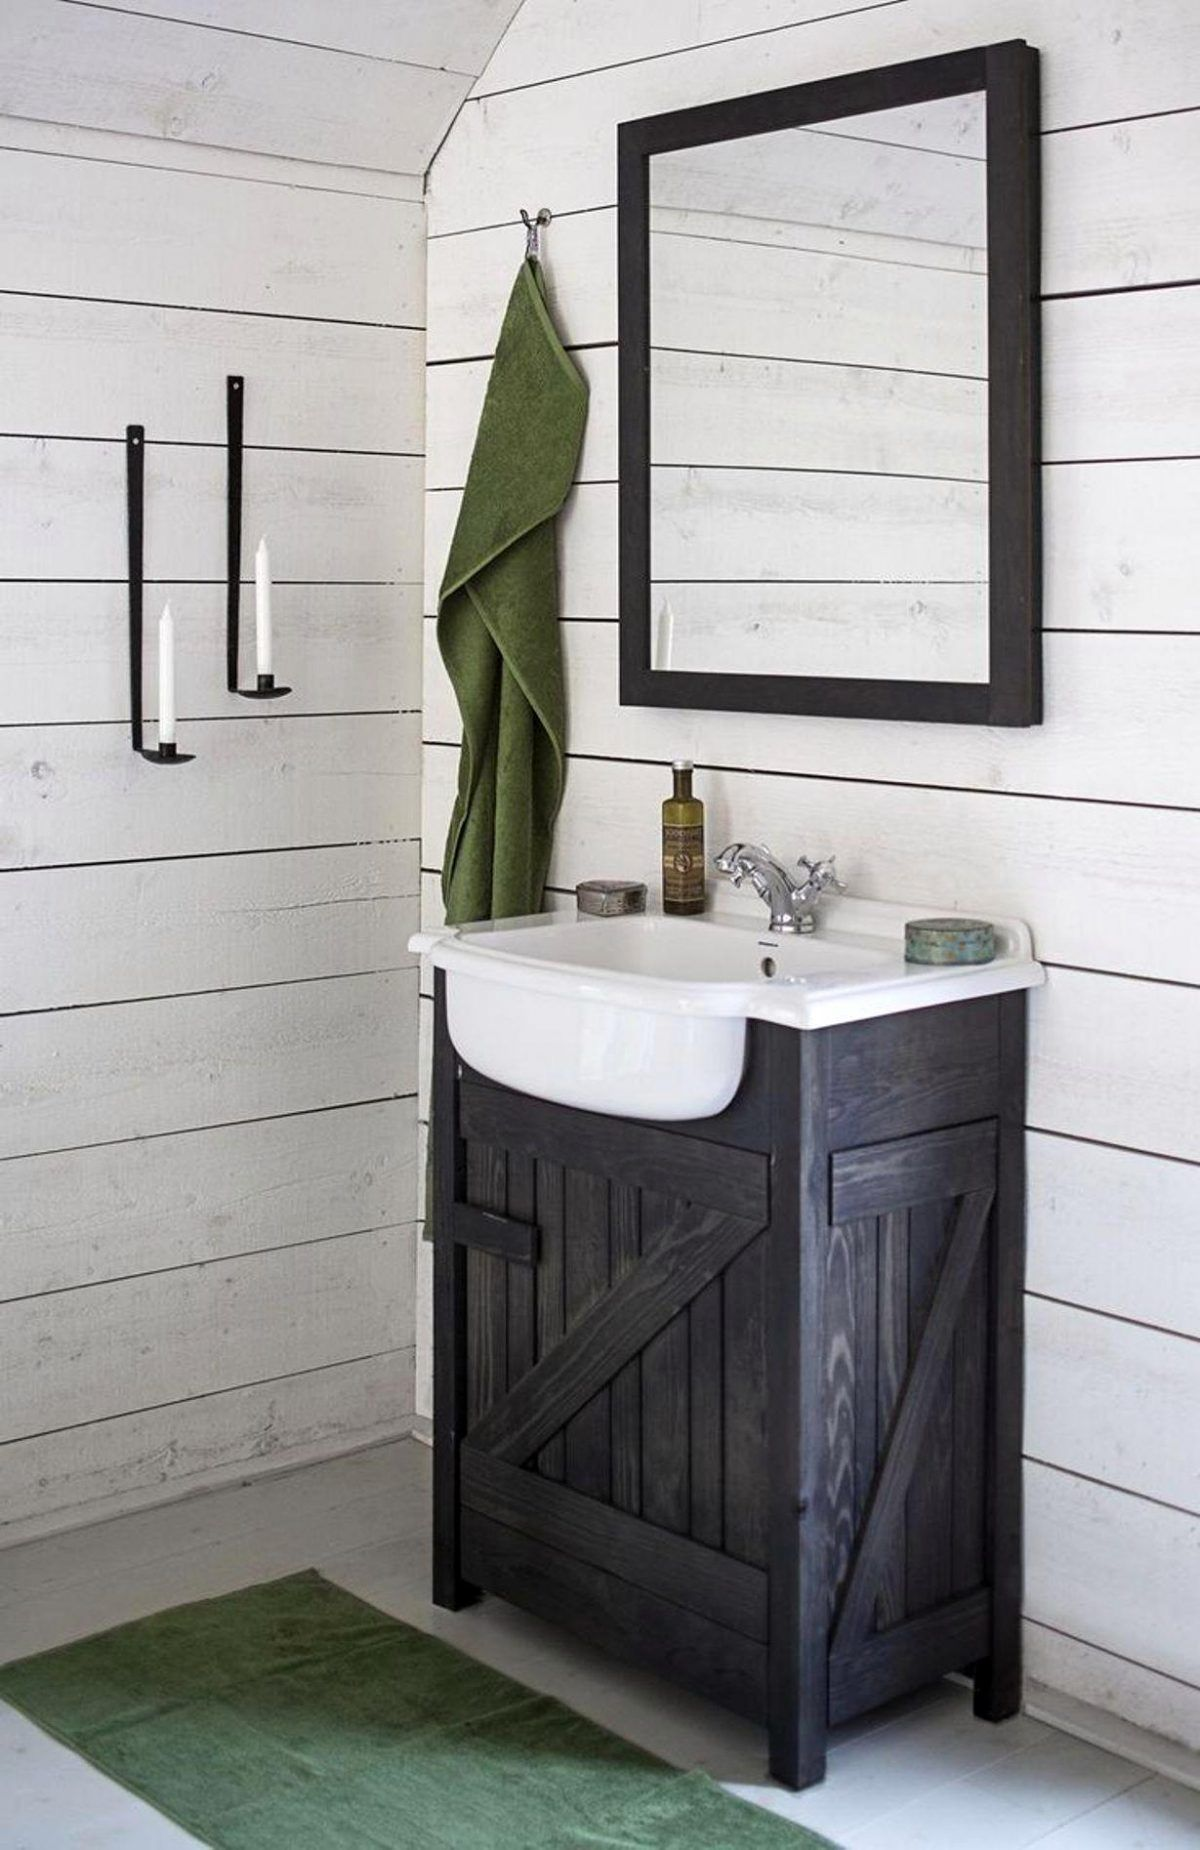 New Modern Minimalist Bathroom Ideas Small Bathroom Vanities Minimalist Bathroom Rustic Bathroom Vanities